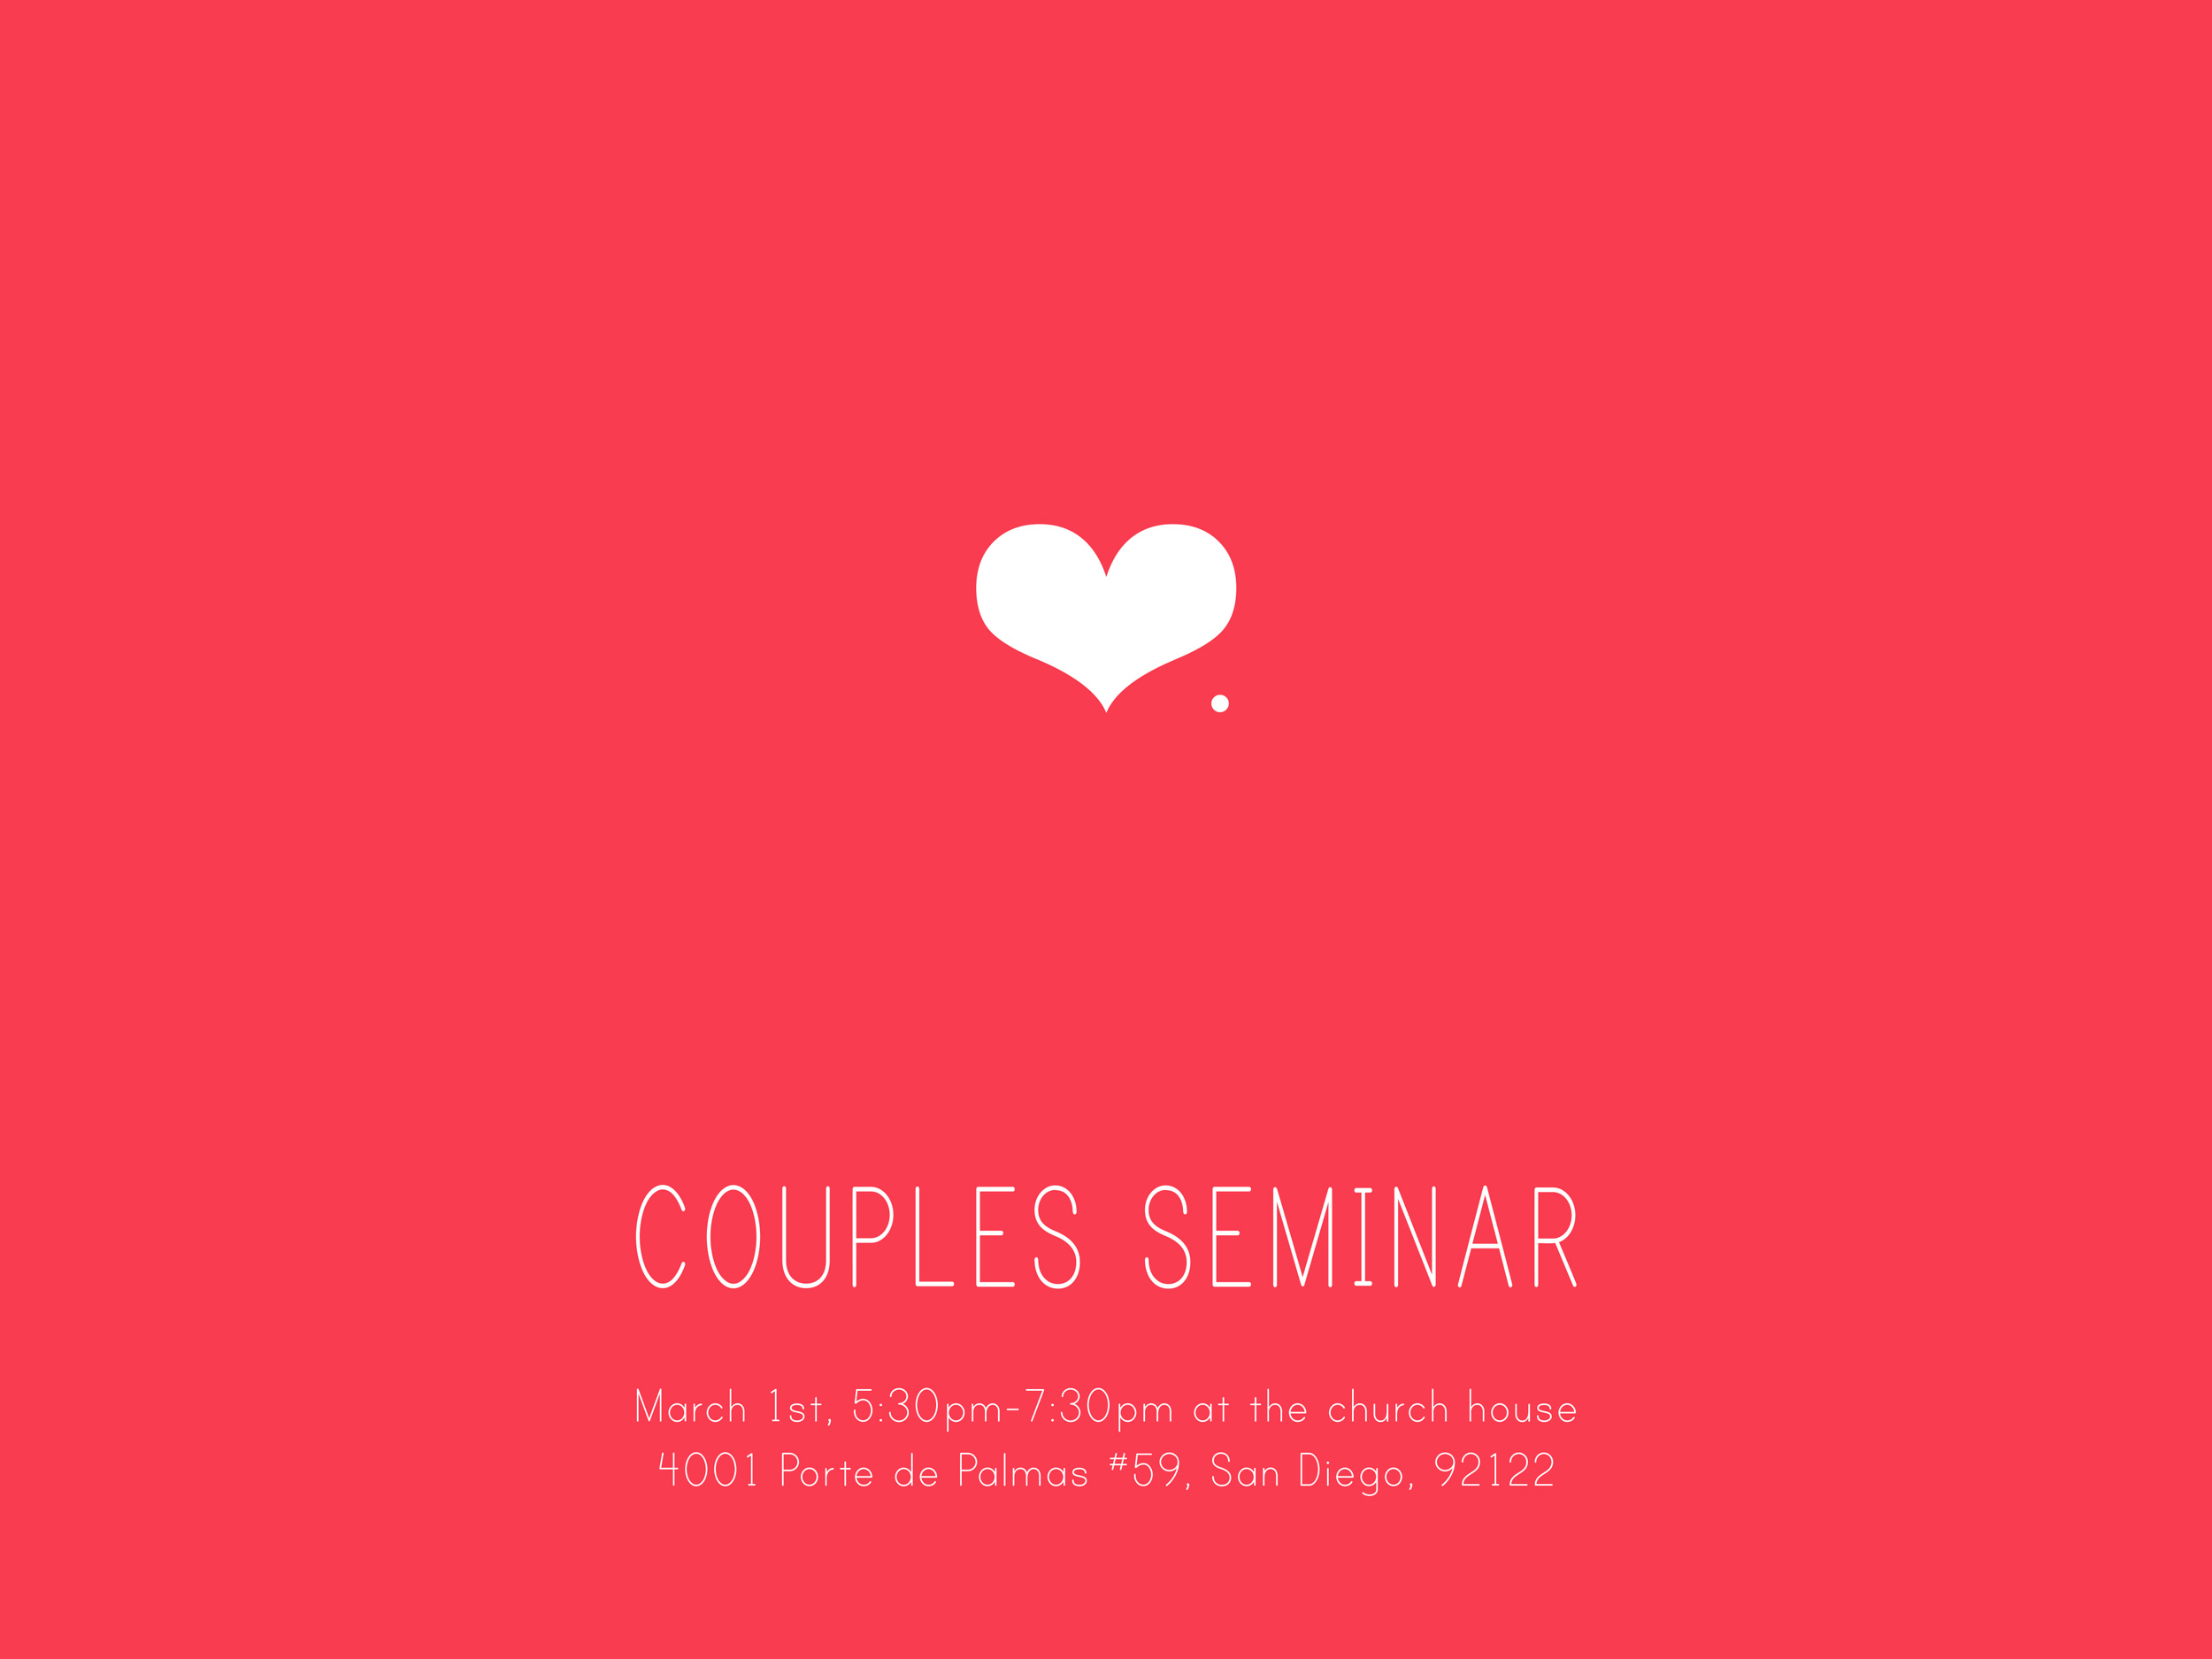 couples-seminar_powerpoint_1024x768